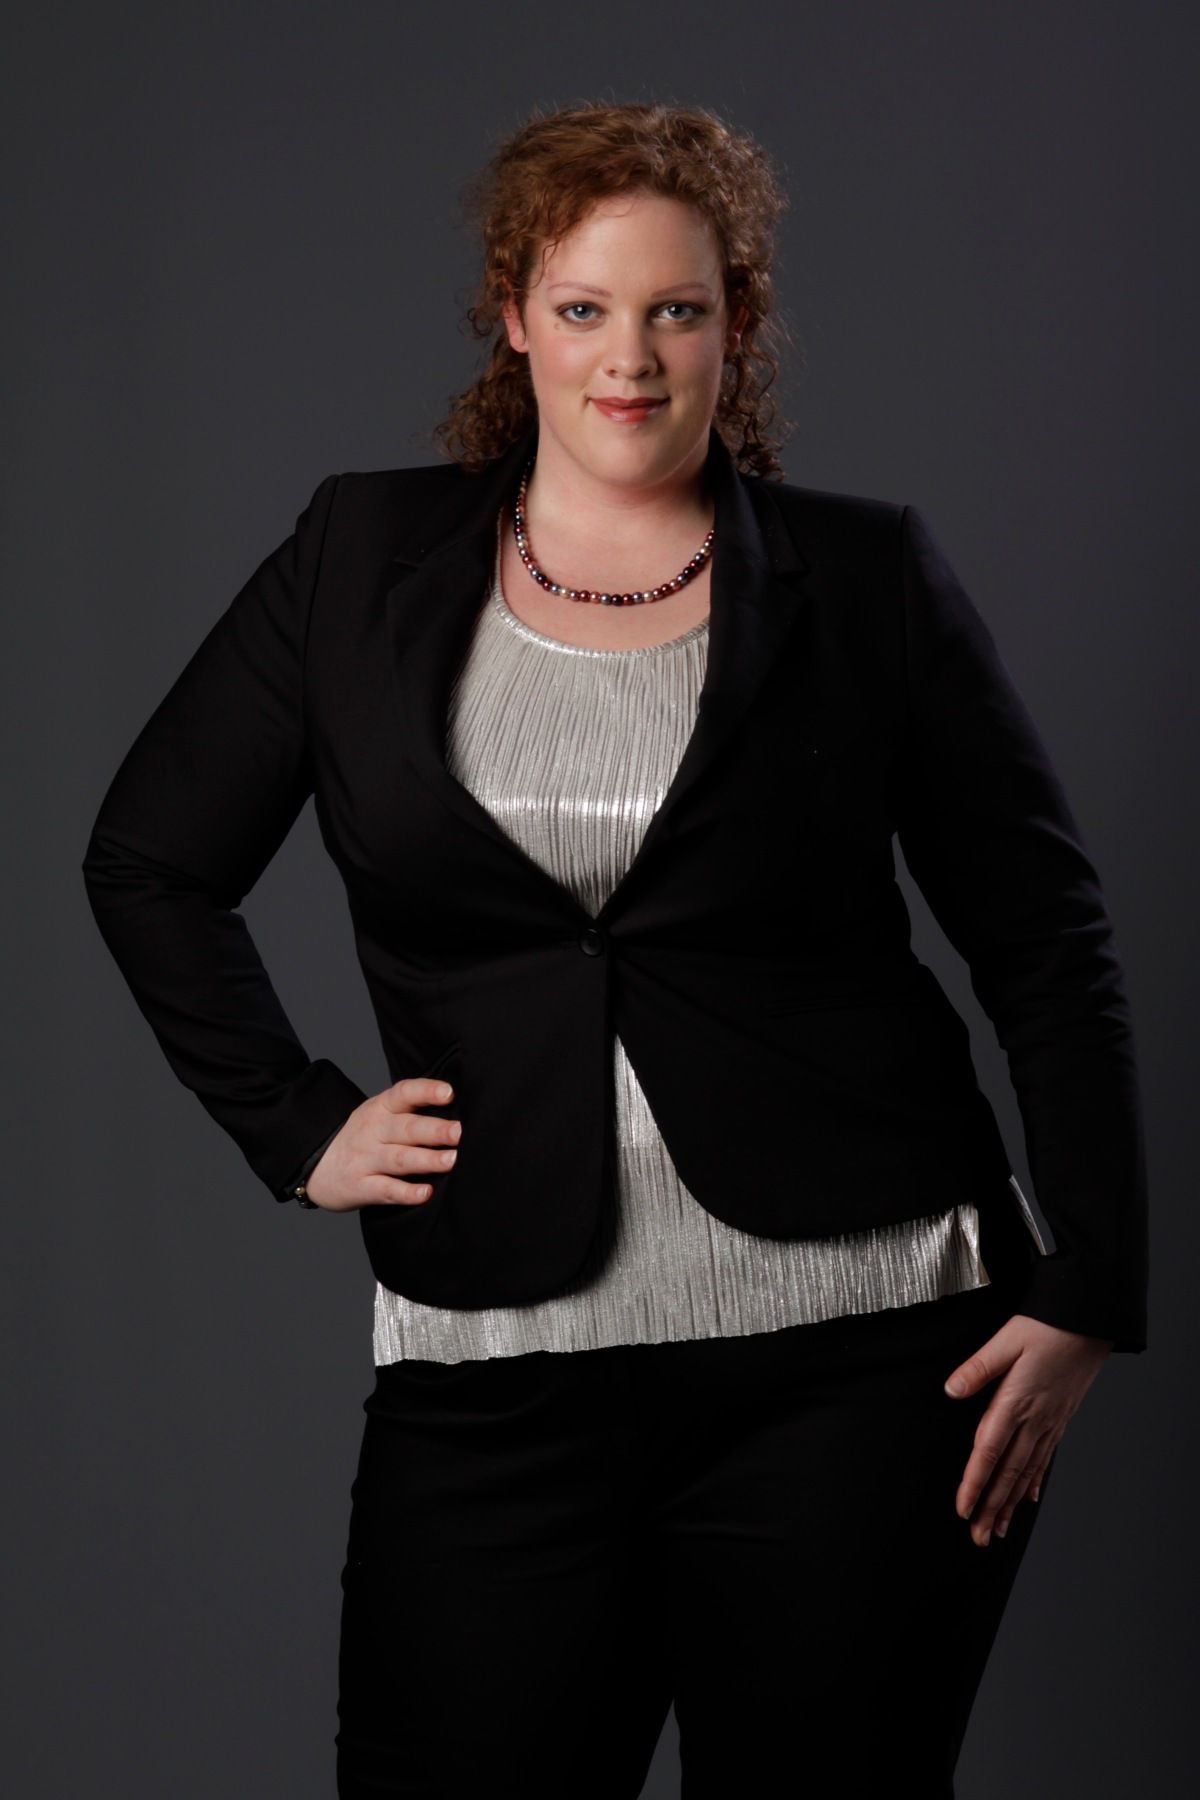 close up plus size zilvren top en zwarte blazer van MS mode